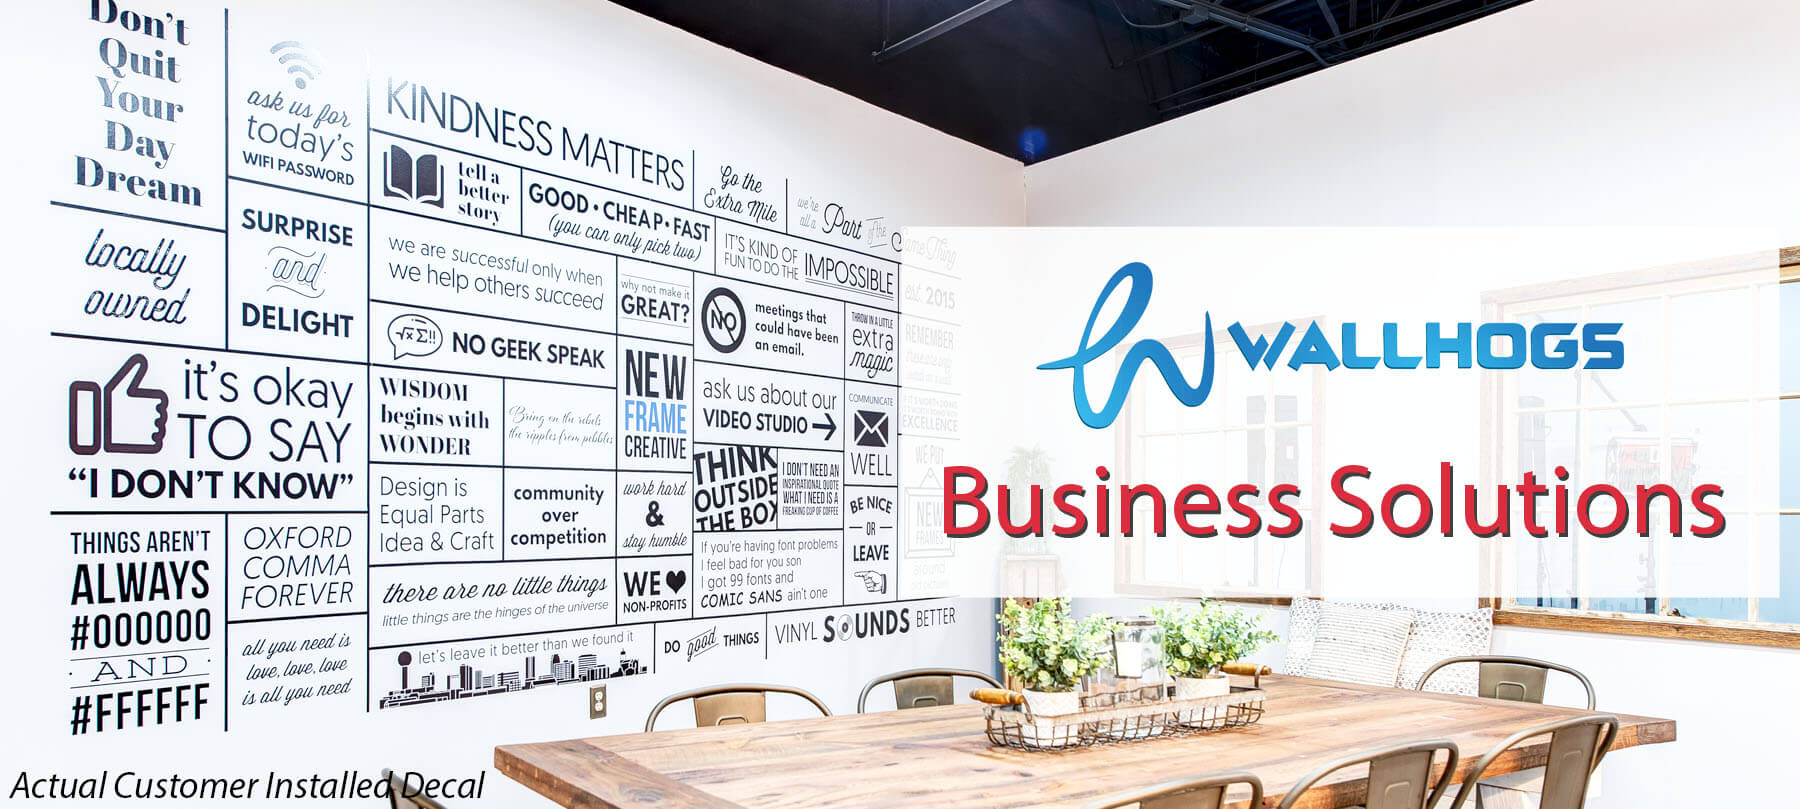 Wallhogs Business Solutions